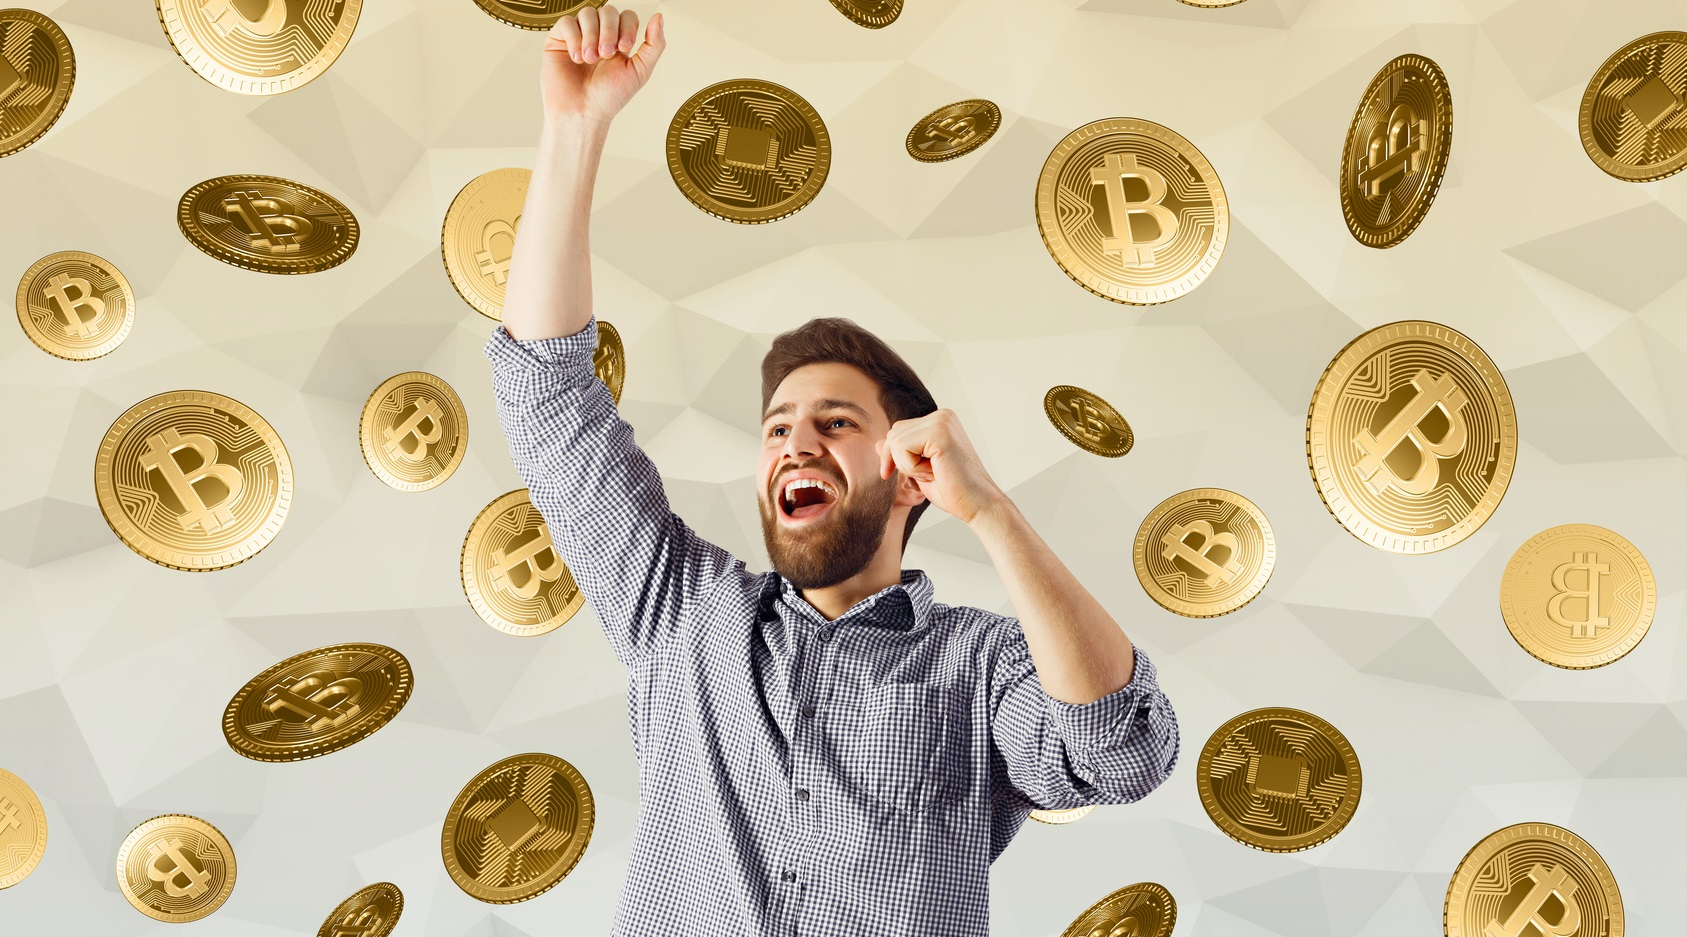 How to profit on Bitcoin? The full Bitcoin trading guide.